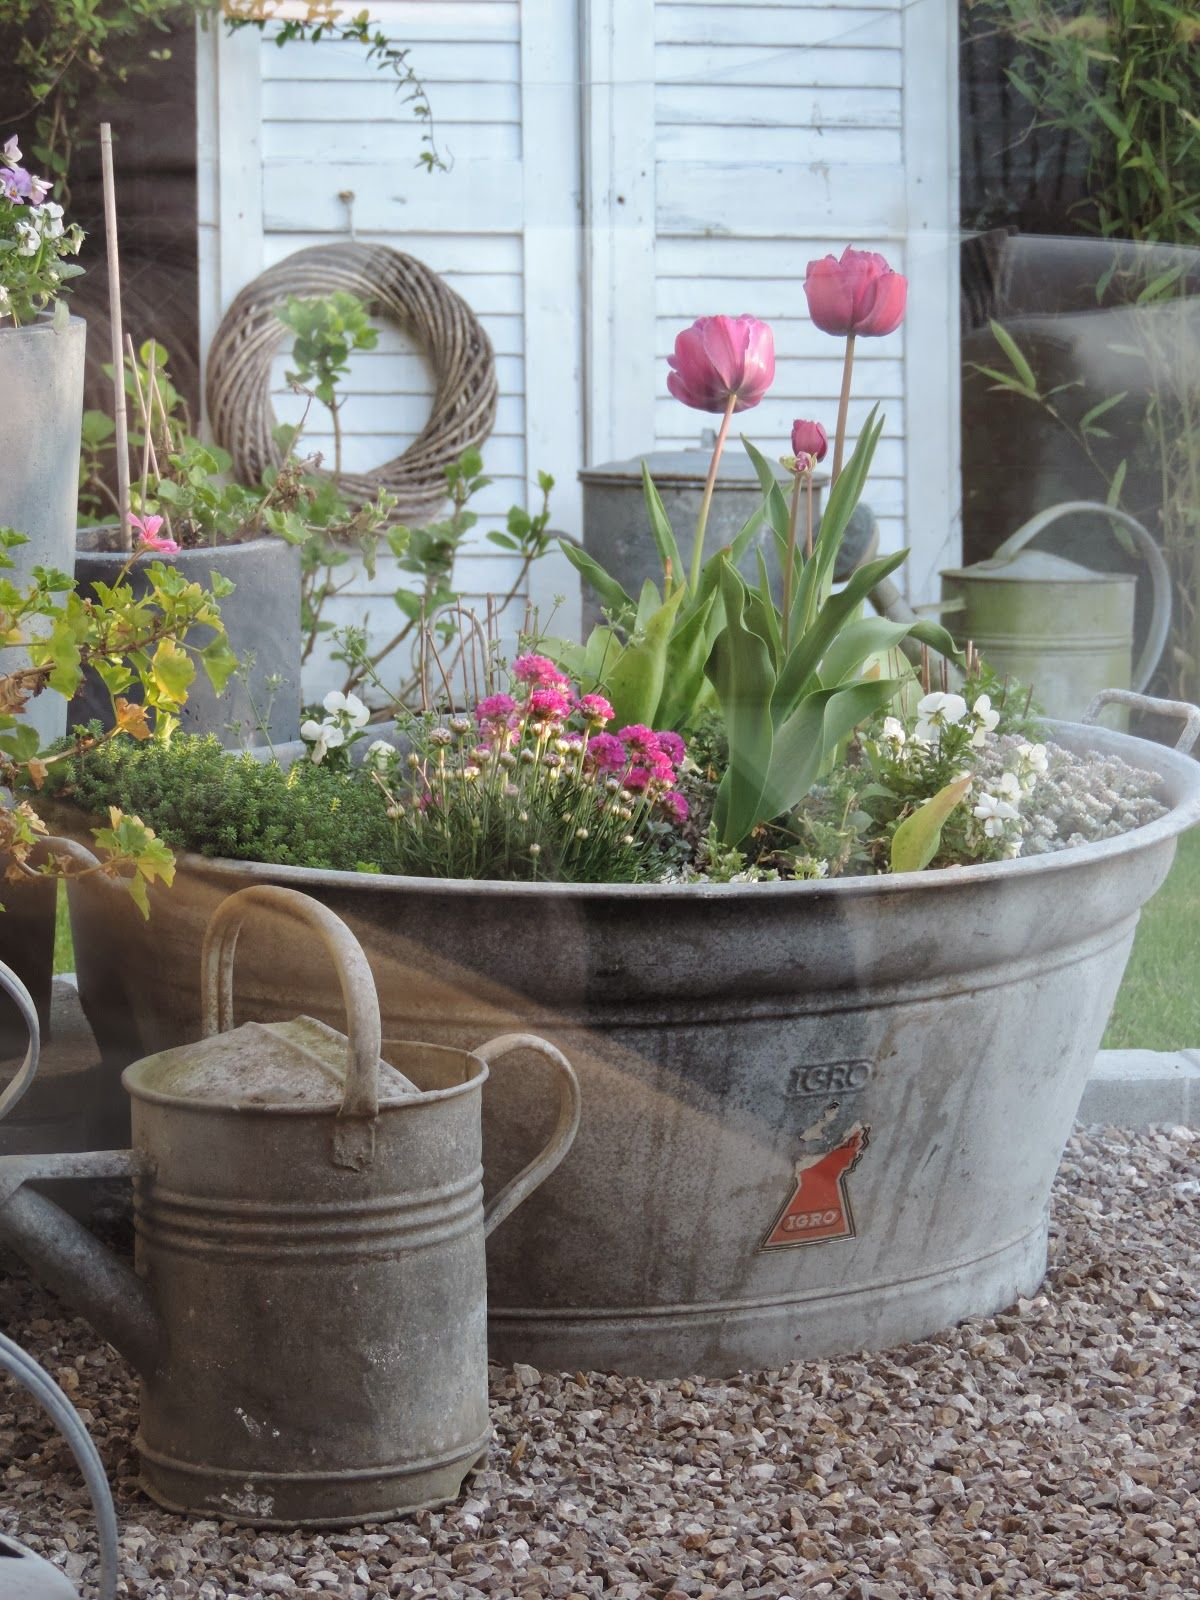 Spring container gardens with pink tulips and